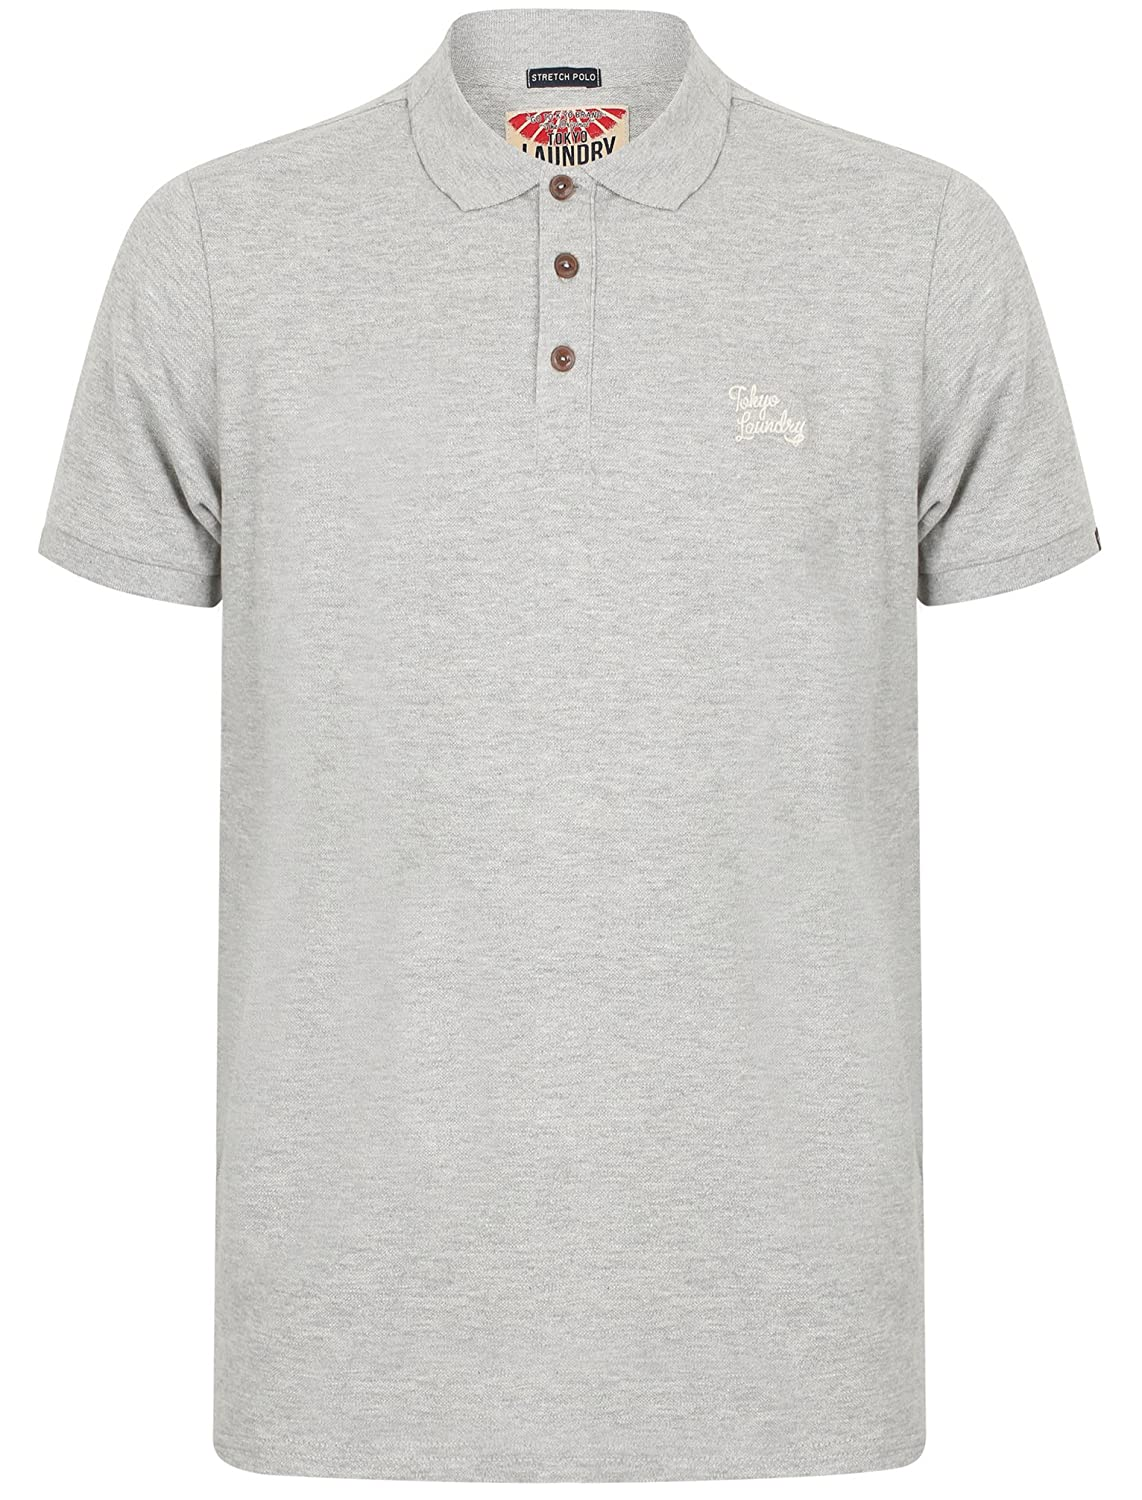 Tokyo Laundry Mens Stretch Pique Polo T-Shirt Roseville'